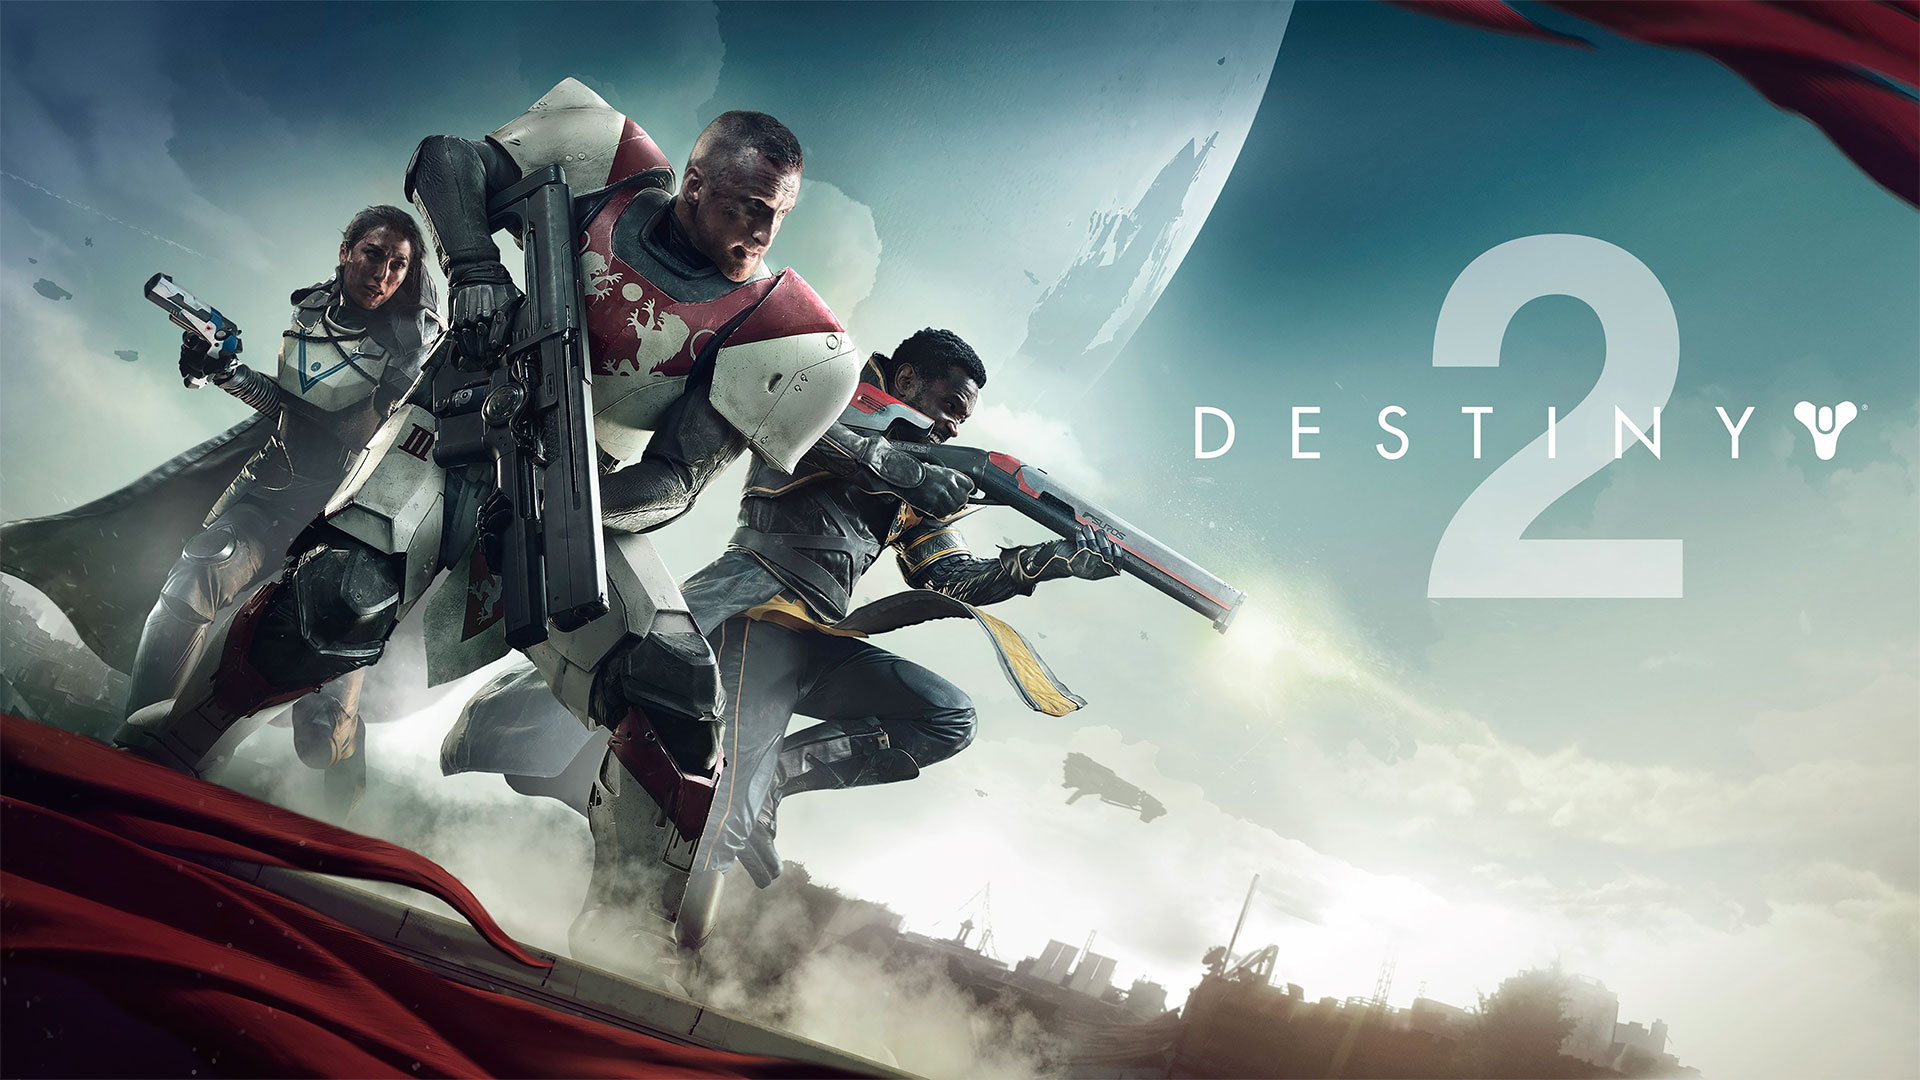 http://mediad.publicbroadcasting.net/p/wshu/files/201710/Destiny-2-1080P-Wallpaper-1.jpg